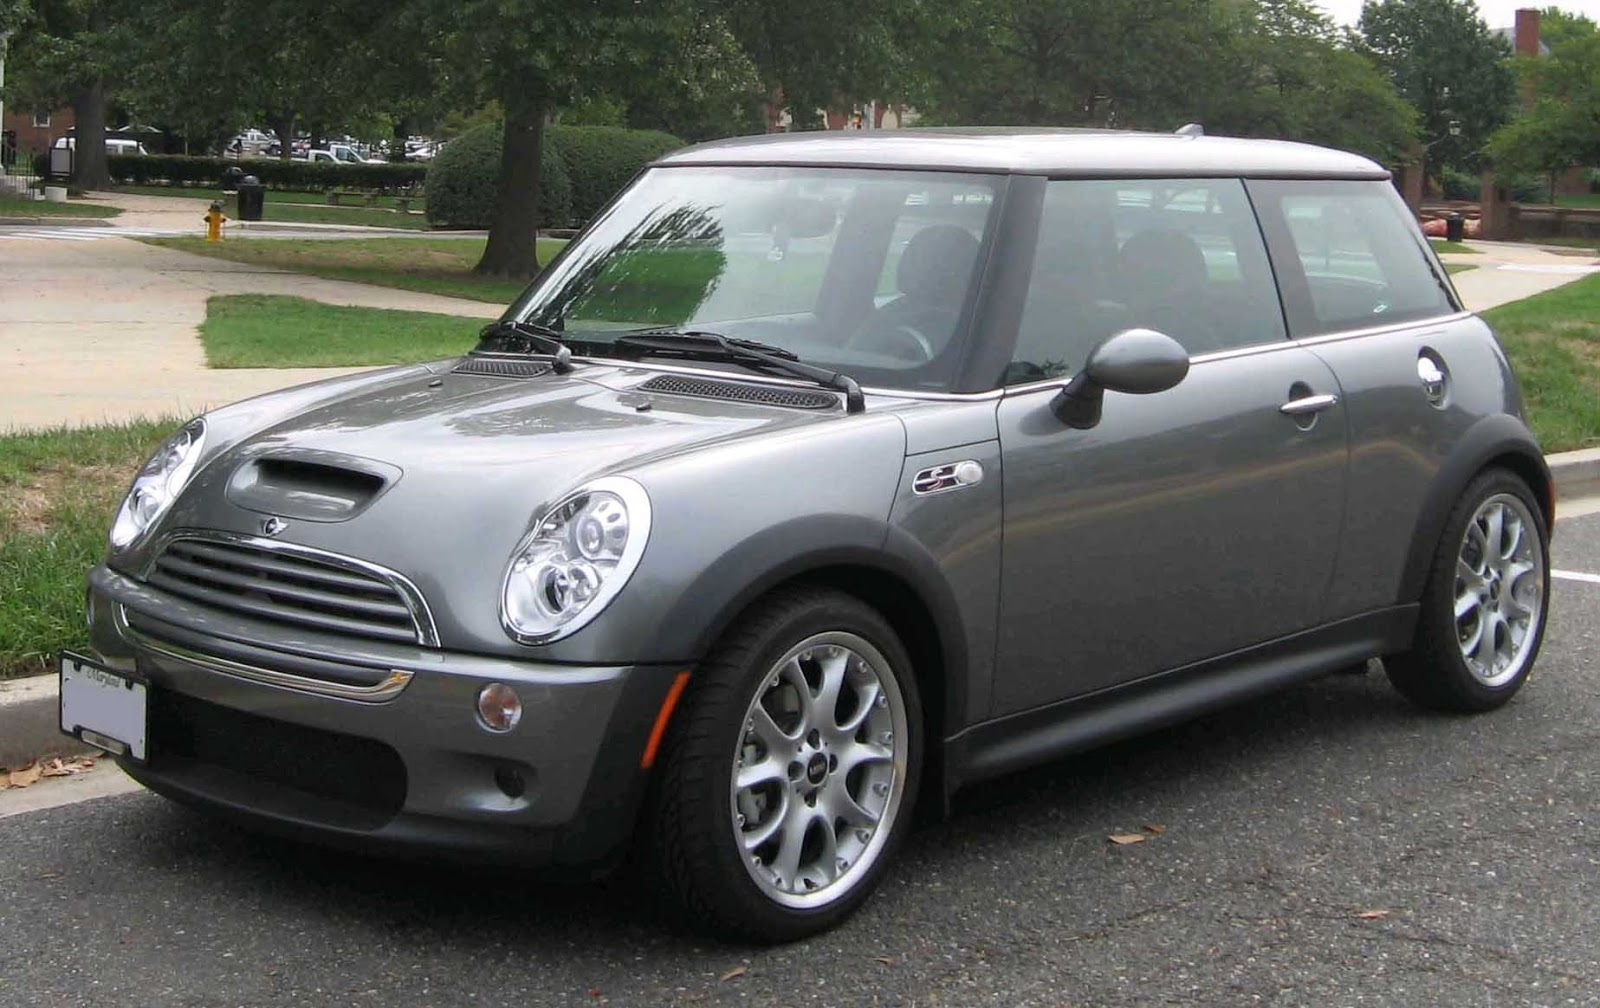 design car rental 2014 mini cooper s car review. Black Bedroom Furniture Sets. Home Design Ideas